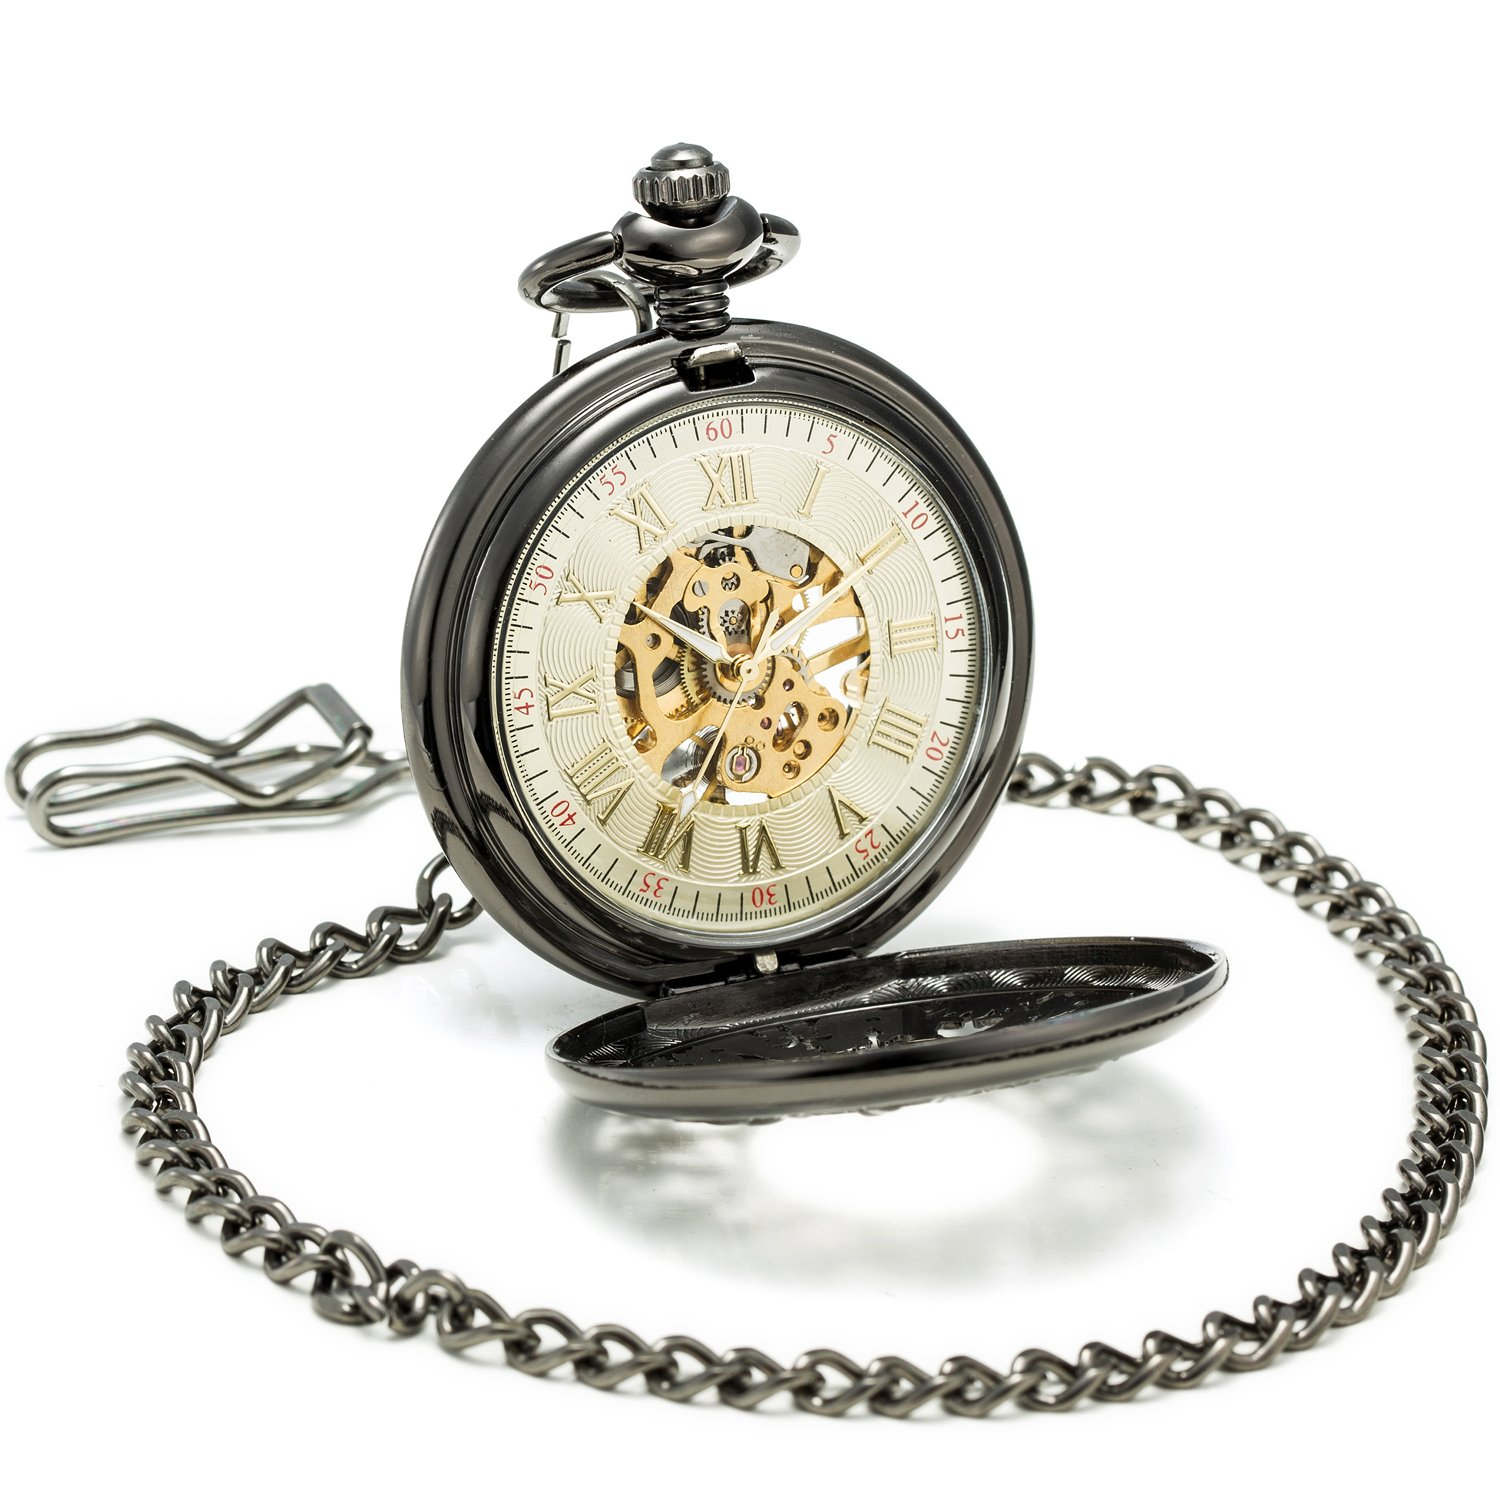 SEWOR Grace Koi Skeleton Pocket Watch Black Mechanical Hand Wind with Leather Gift Box (Black) by SEWOR (Image #3)